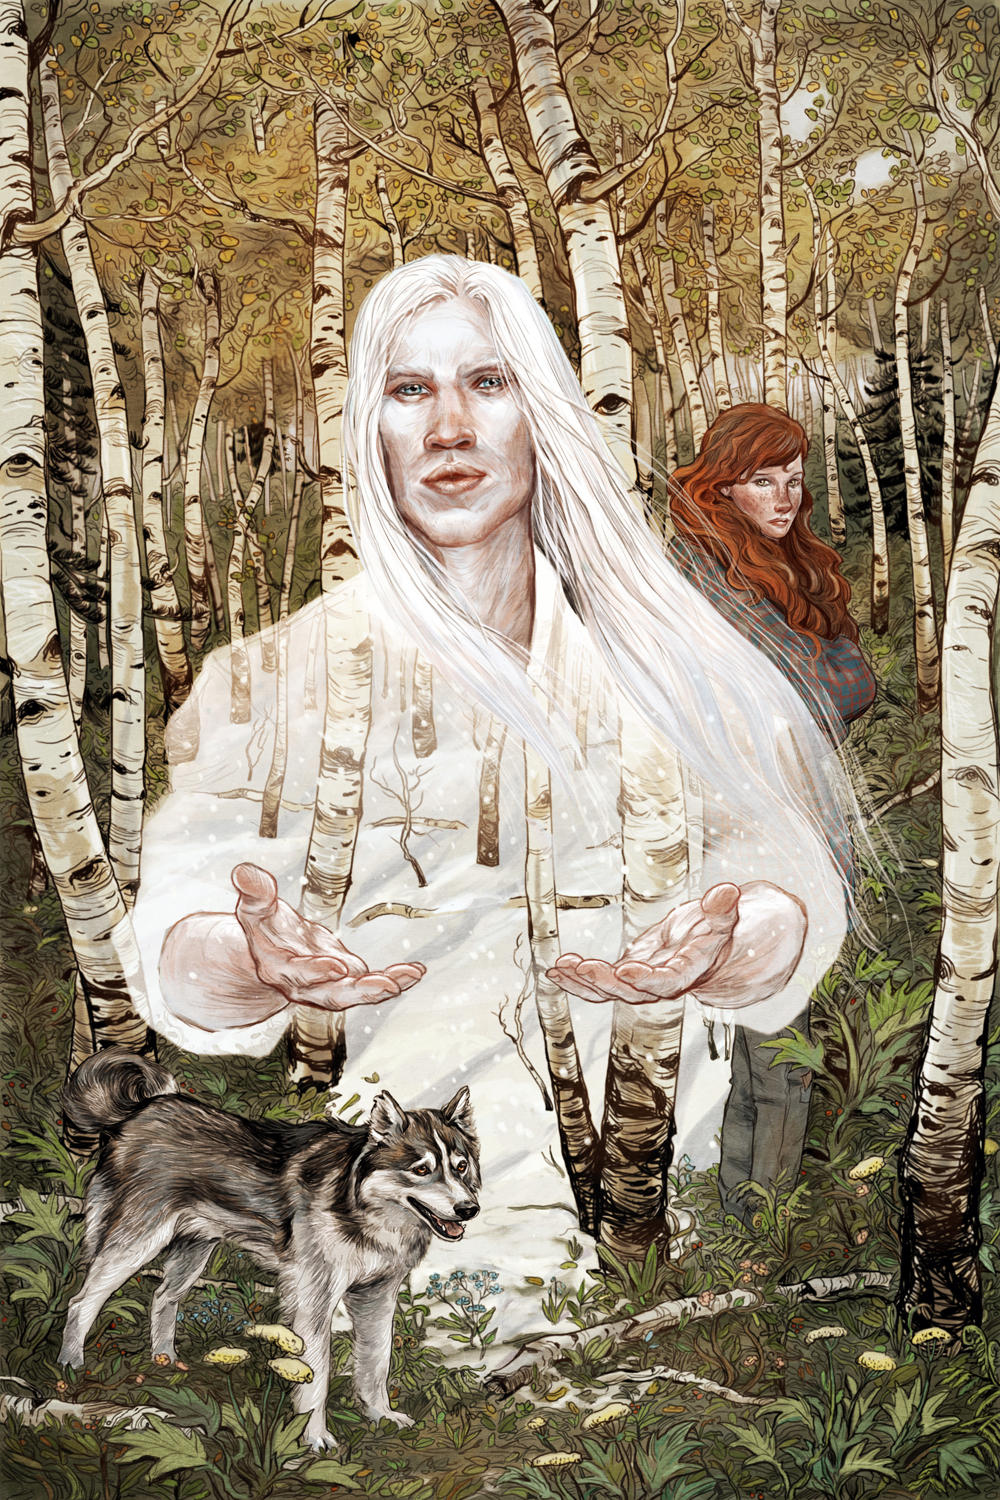 Cover illustration for Catskin by Artemis Grey by bluefooted